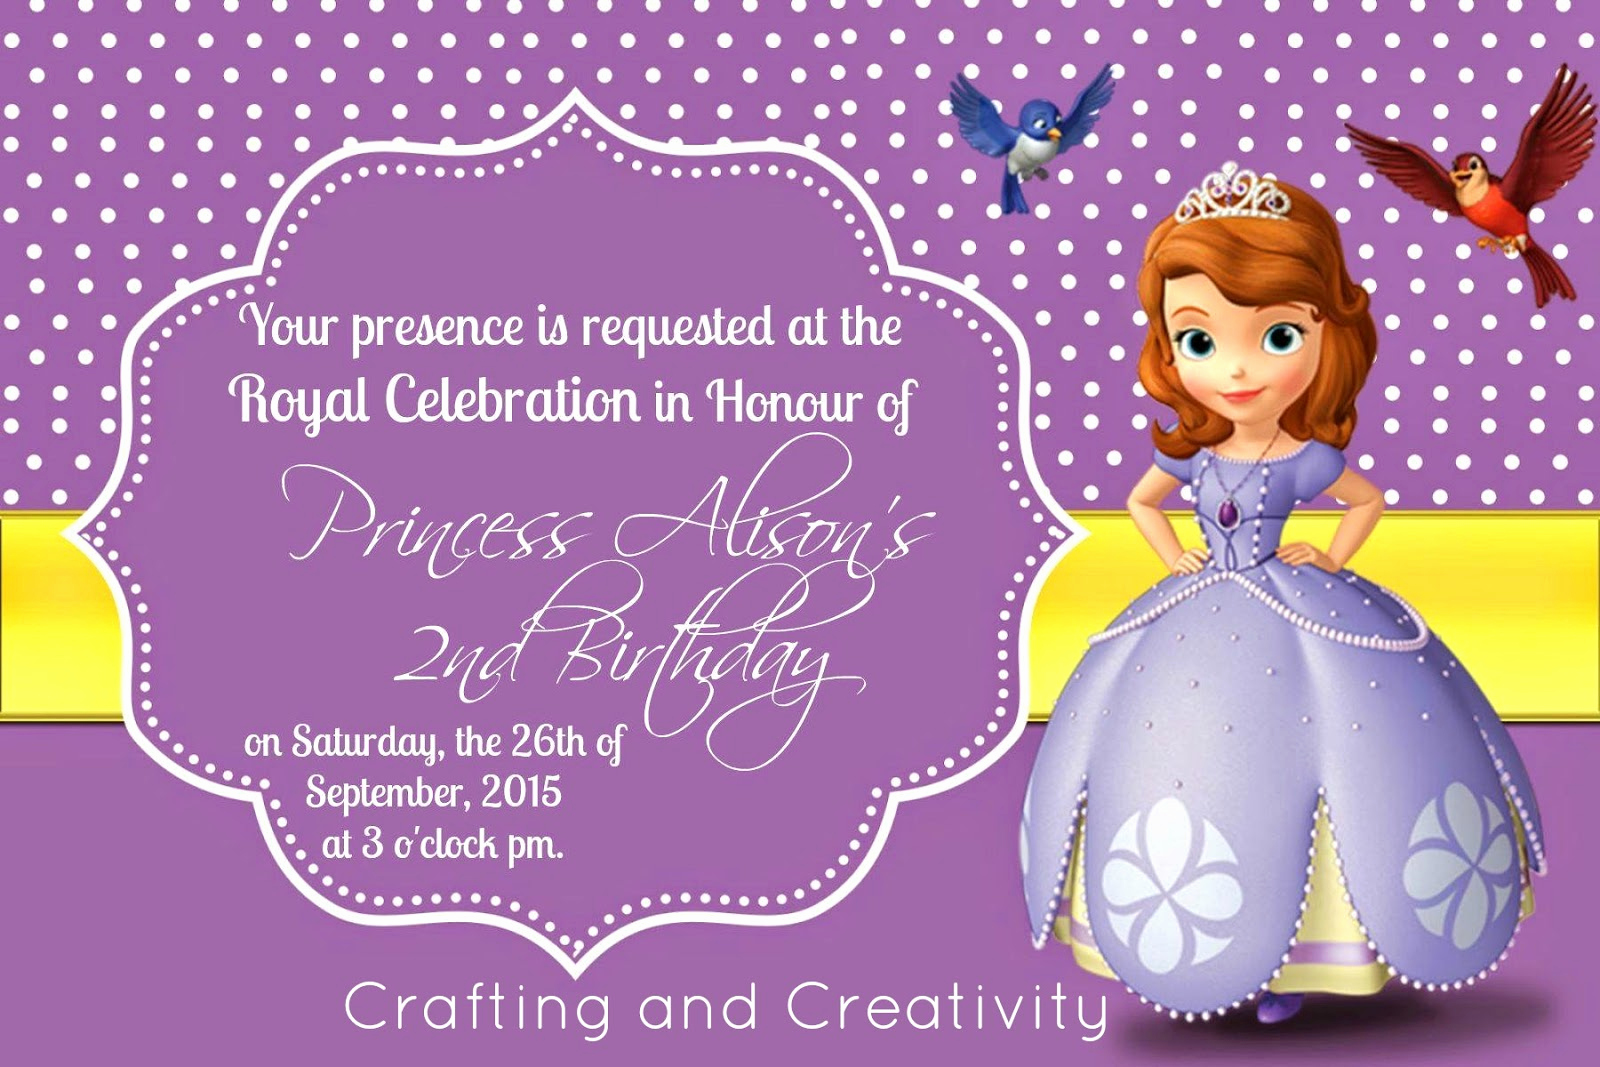 Sofia the First Invitation Template Elegant Crafting and Creativity My Daughter S 2nd Birthday Party